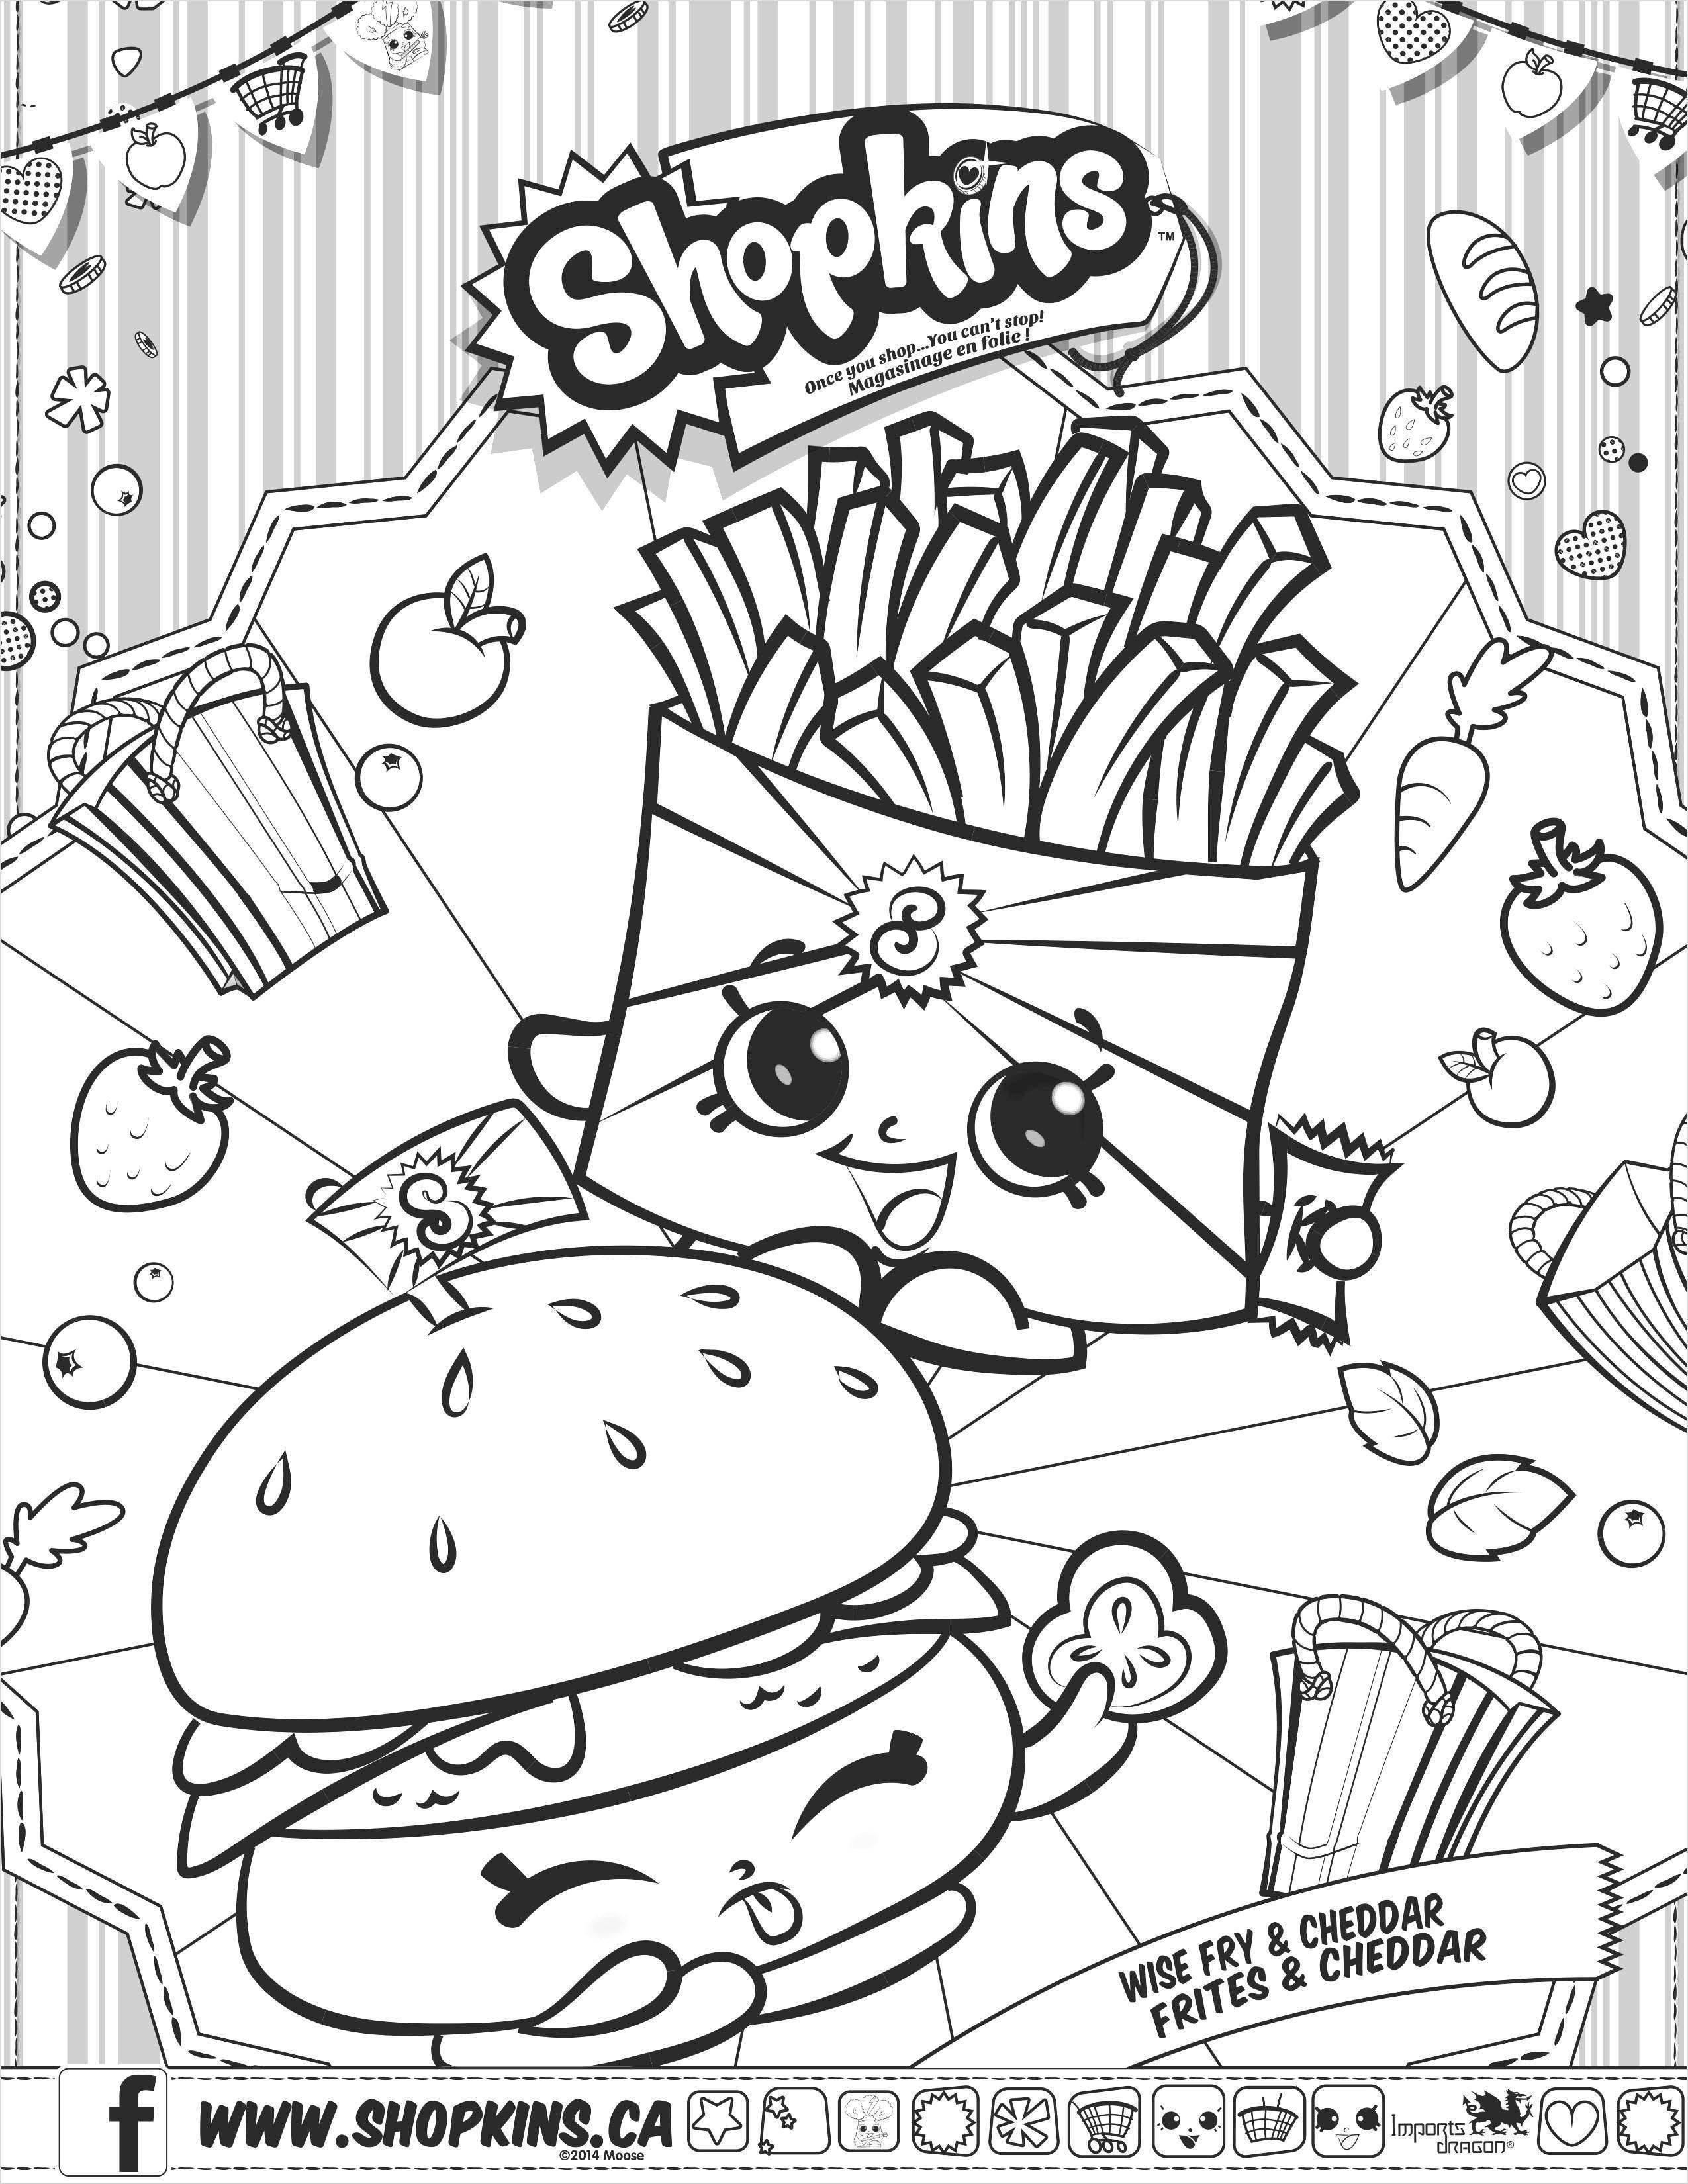 Free Shopkins Coloring Pages Beautiful Shopkin Coloring Books Luxury Coloring Book Pag Shopkin Coloring Pages Valentine Coloring Pages Shopkins Colouring Pages